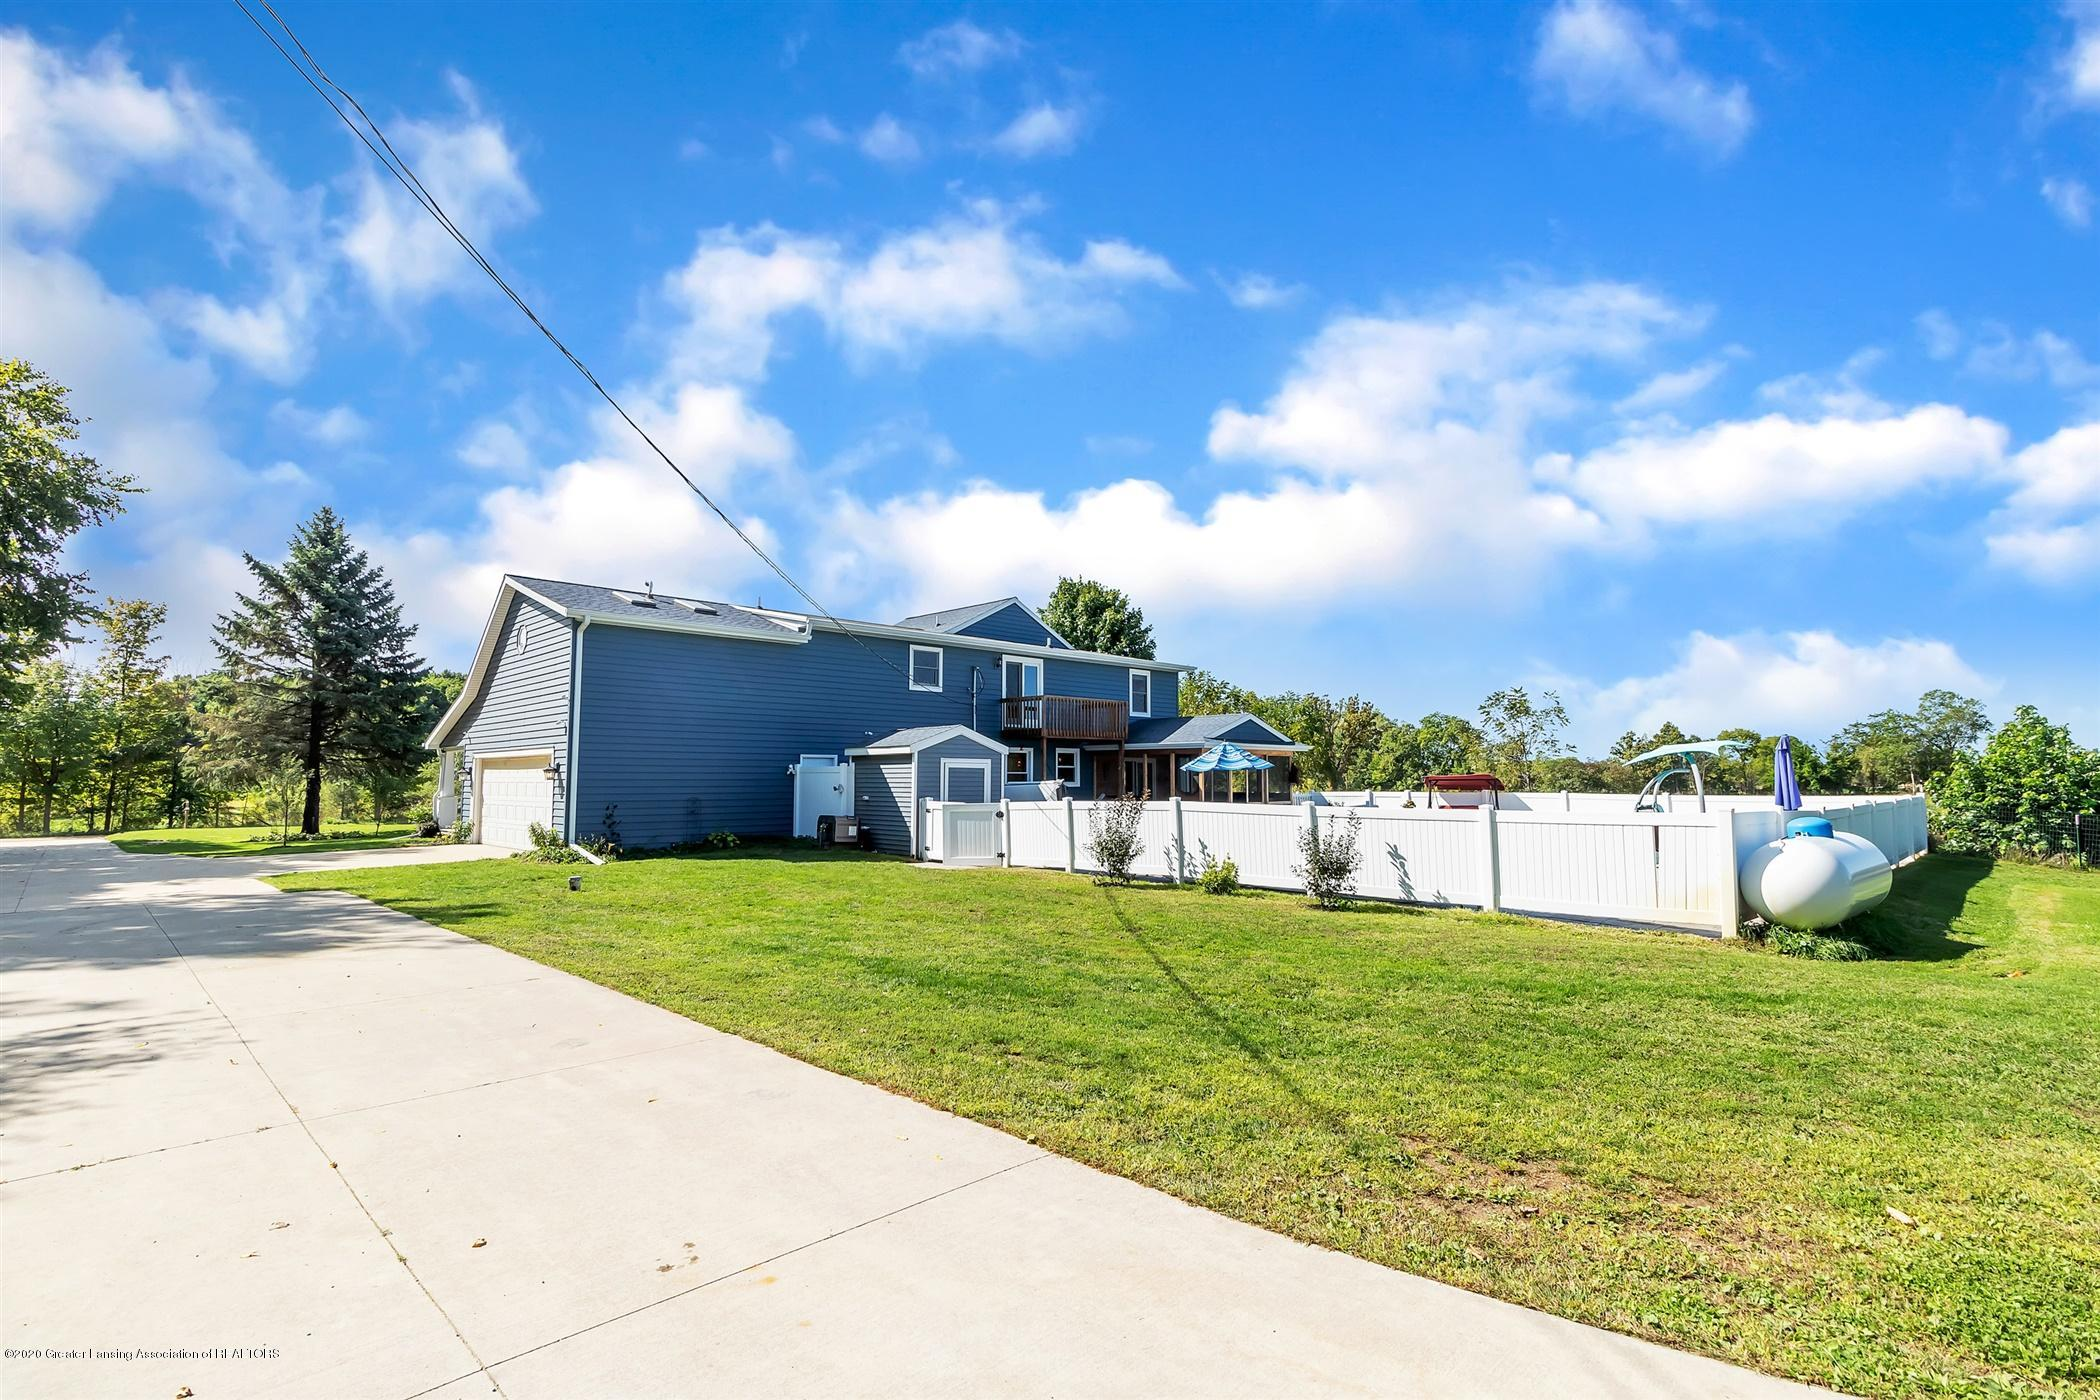 7346 W Cutler Rd - PRIVACY FENCE AROUND POOL, PROPANE TANK - 66